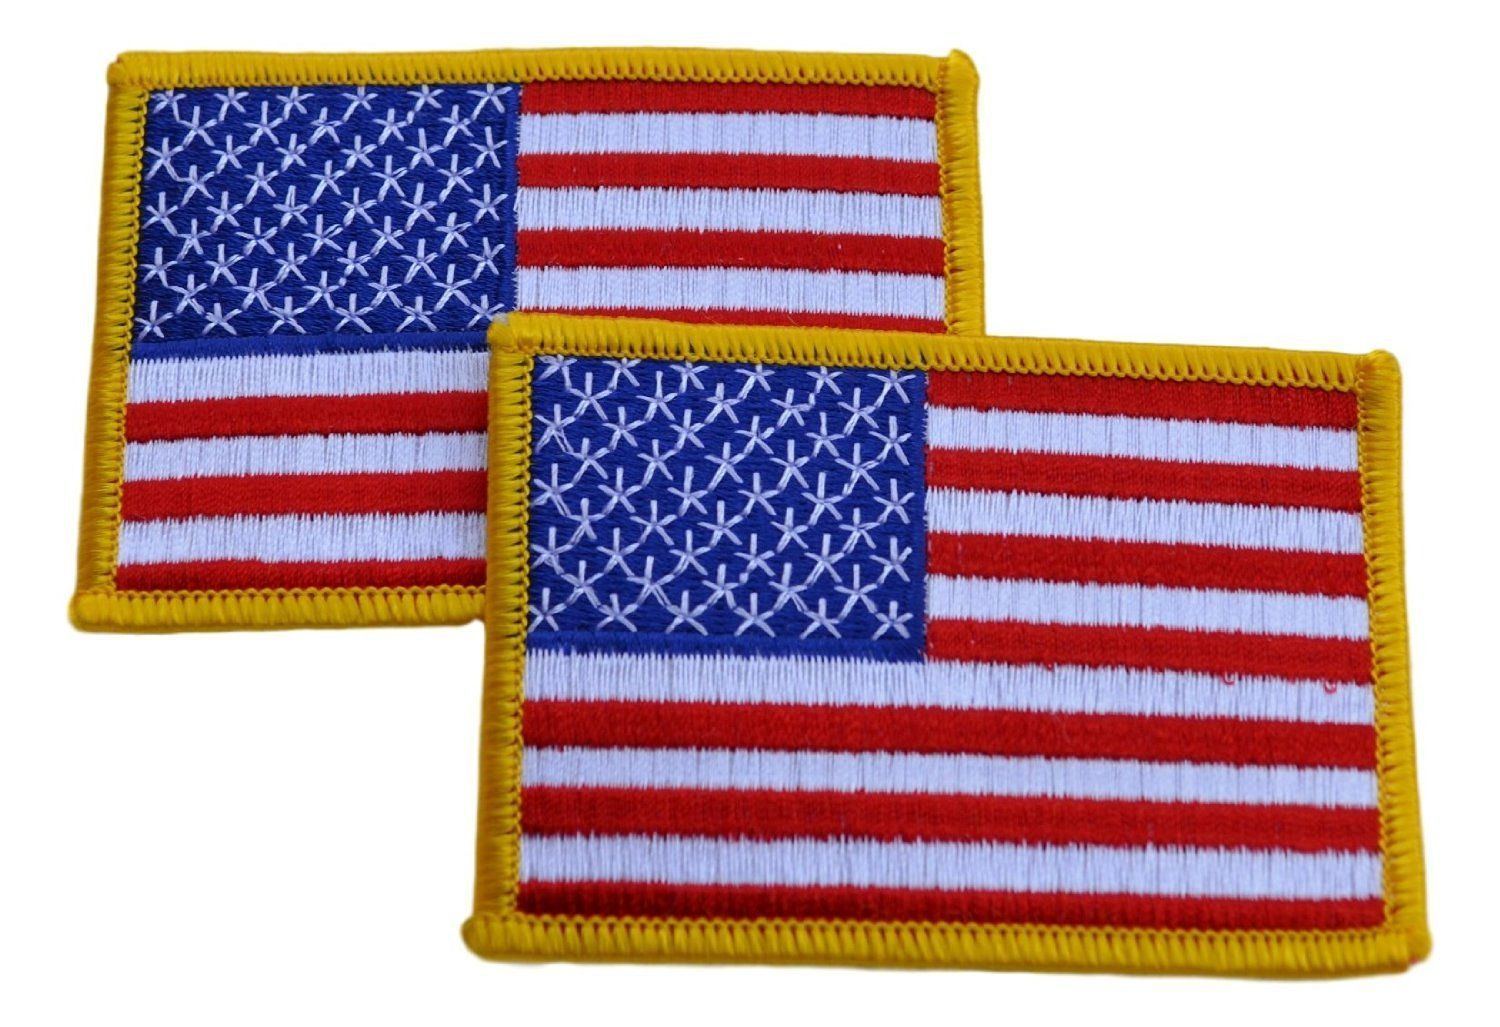 Amazon Com Tactical Black White Us Flag Patch 3 W X 2 H Velcro Backing Arts Crafts Sewing Embroidered Patches Hand Embroidery Designs Patches